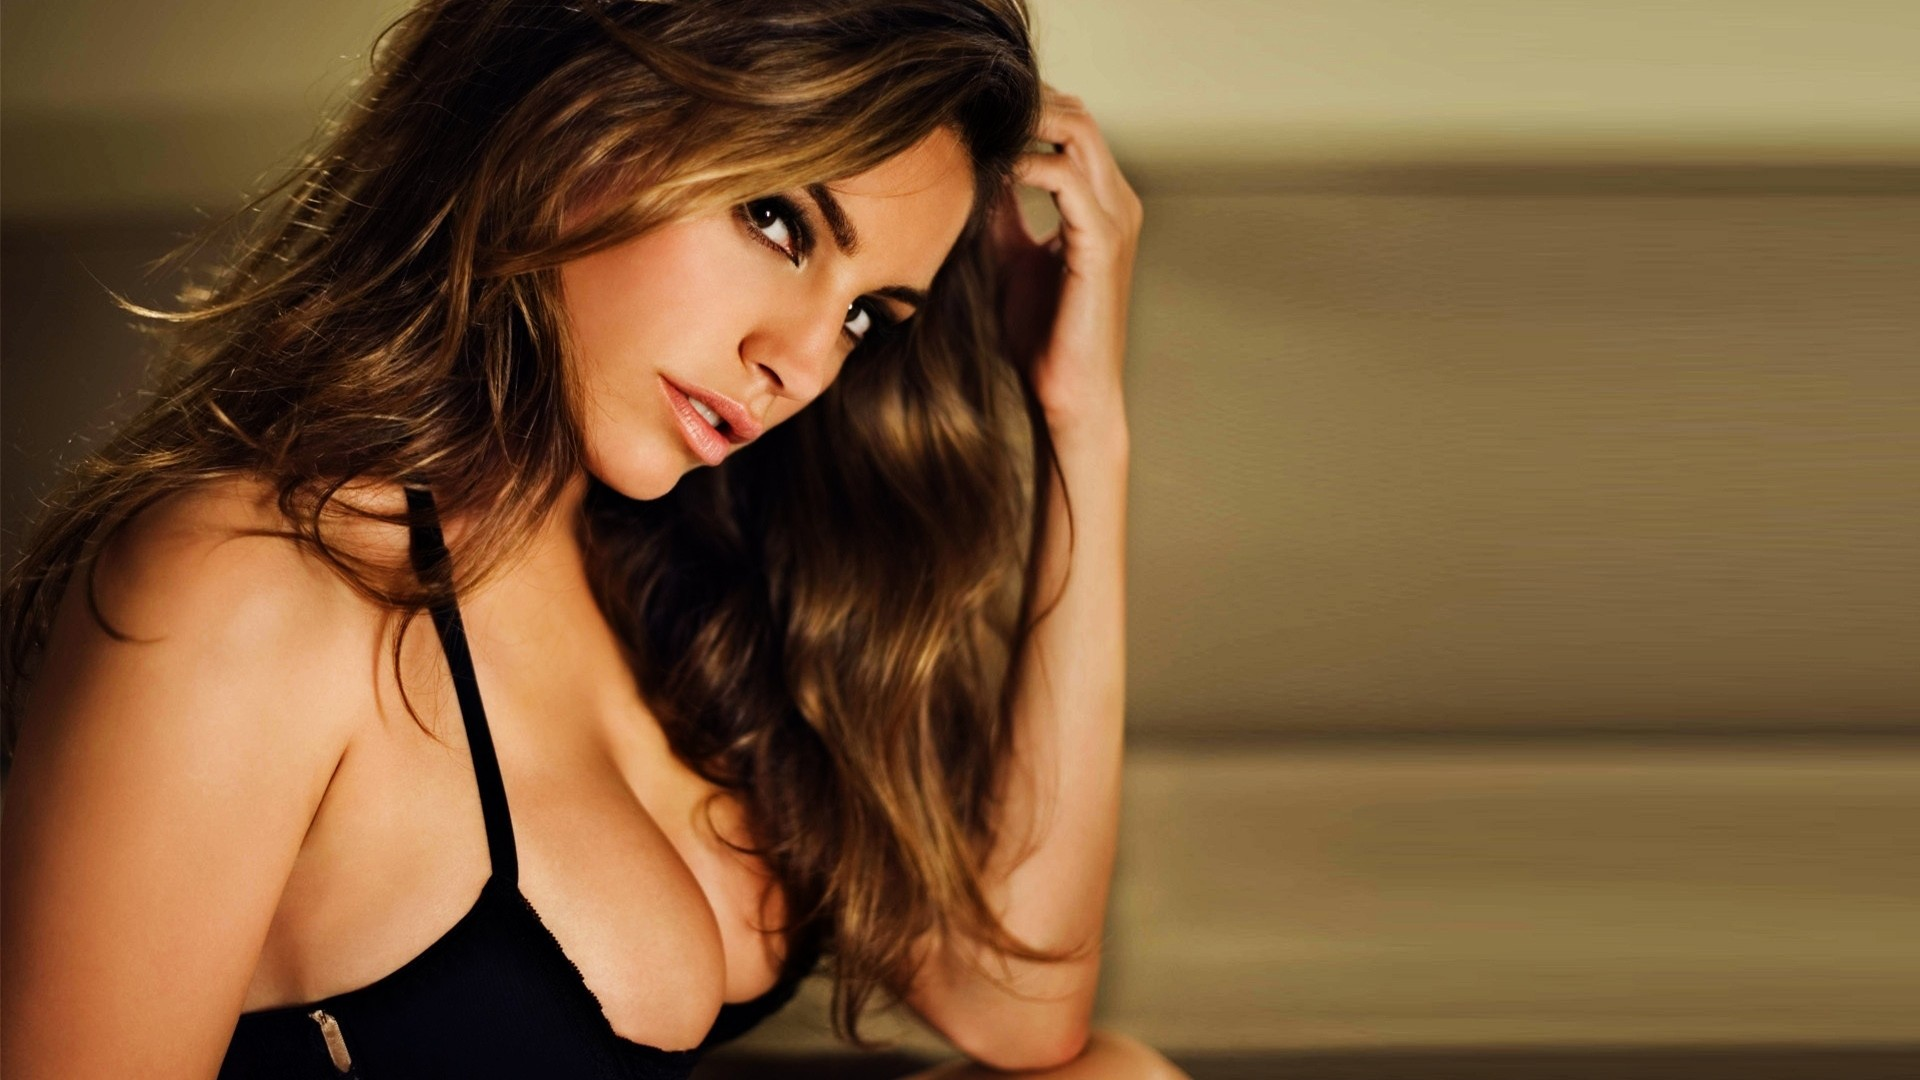 Kelly Brook Download Free Backgrounds HD